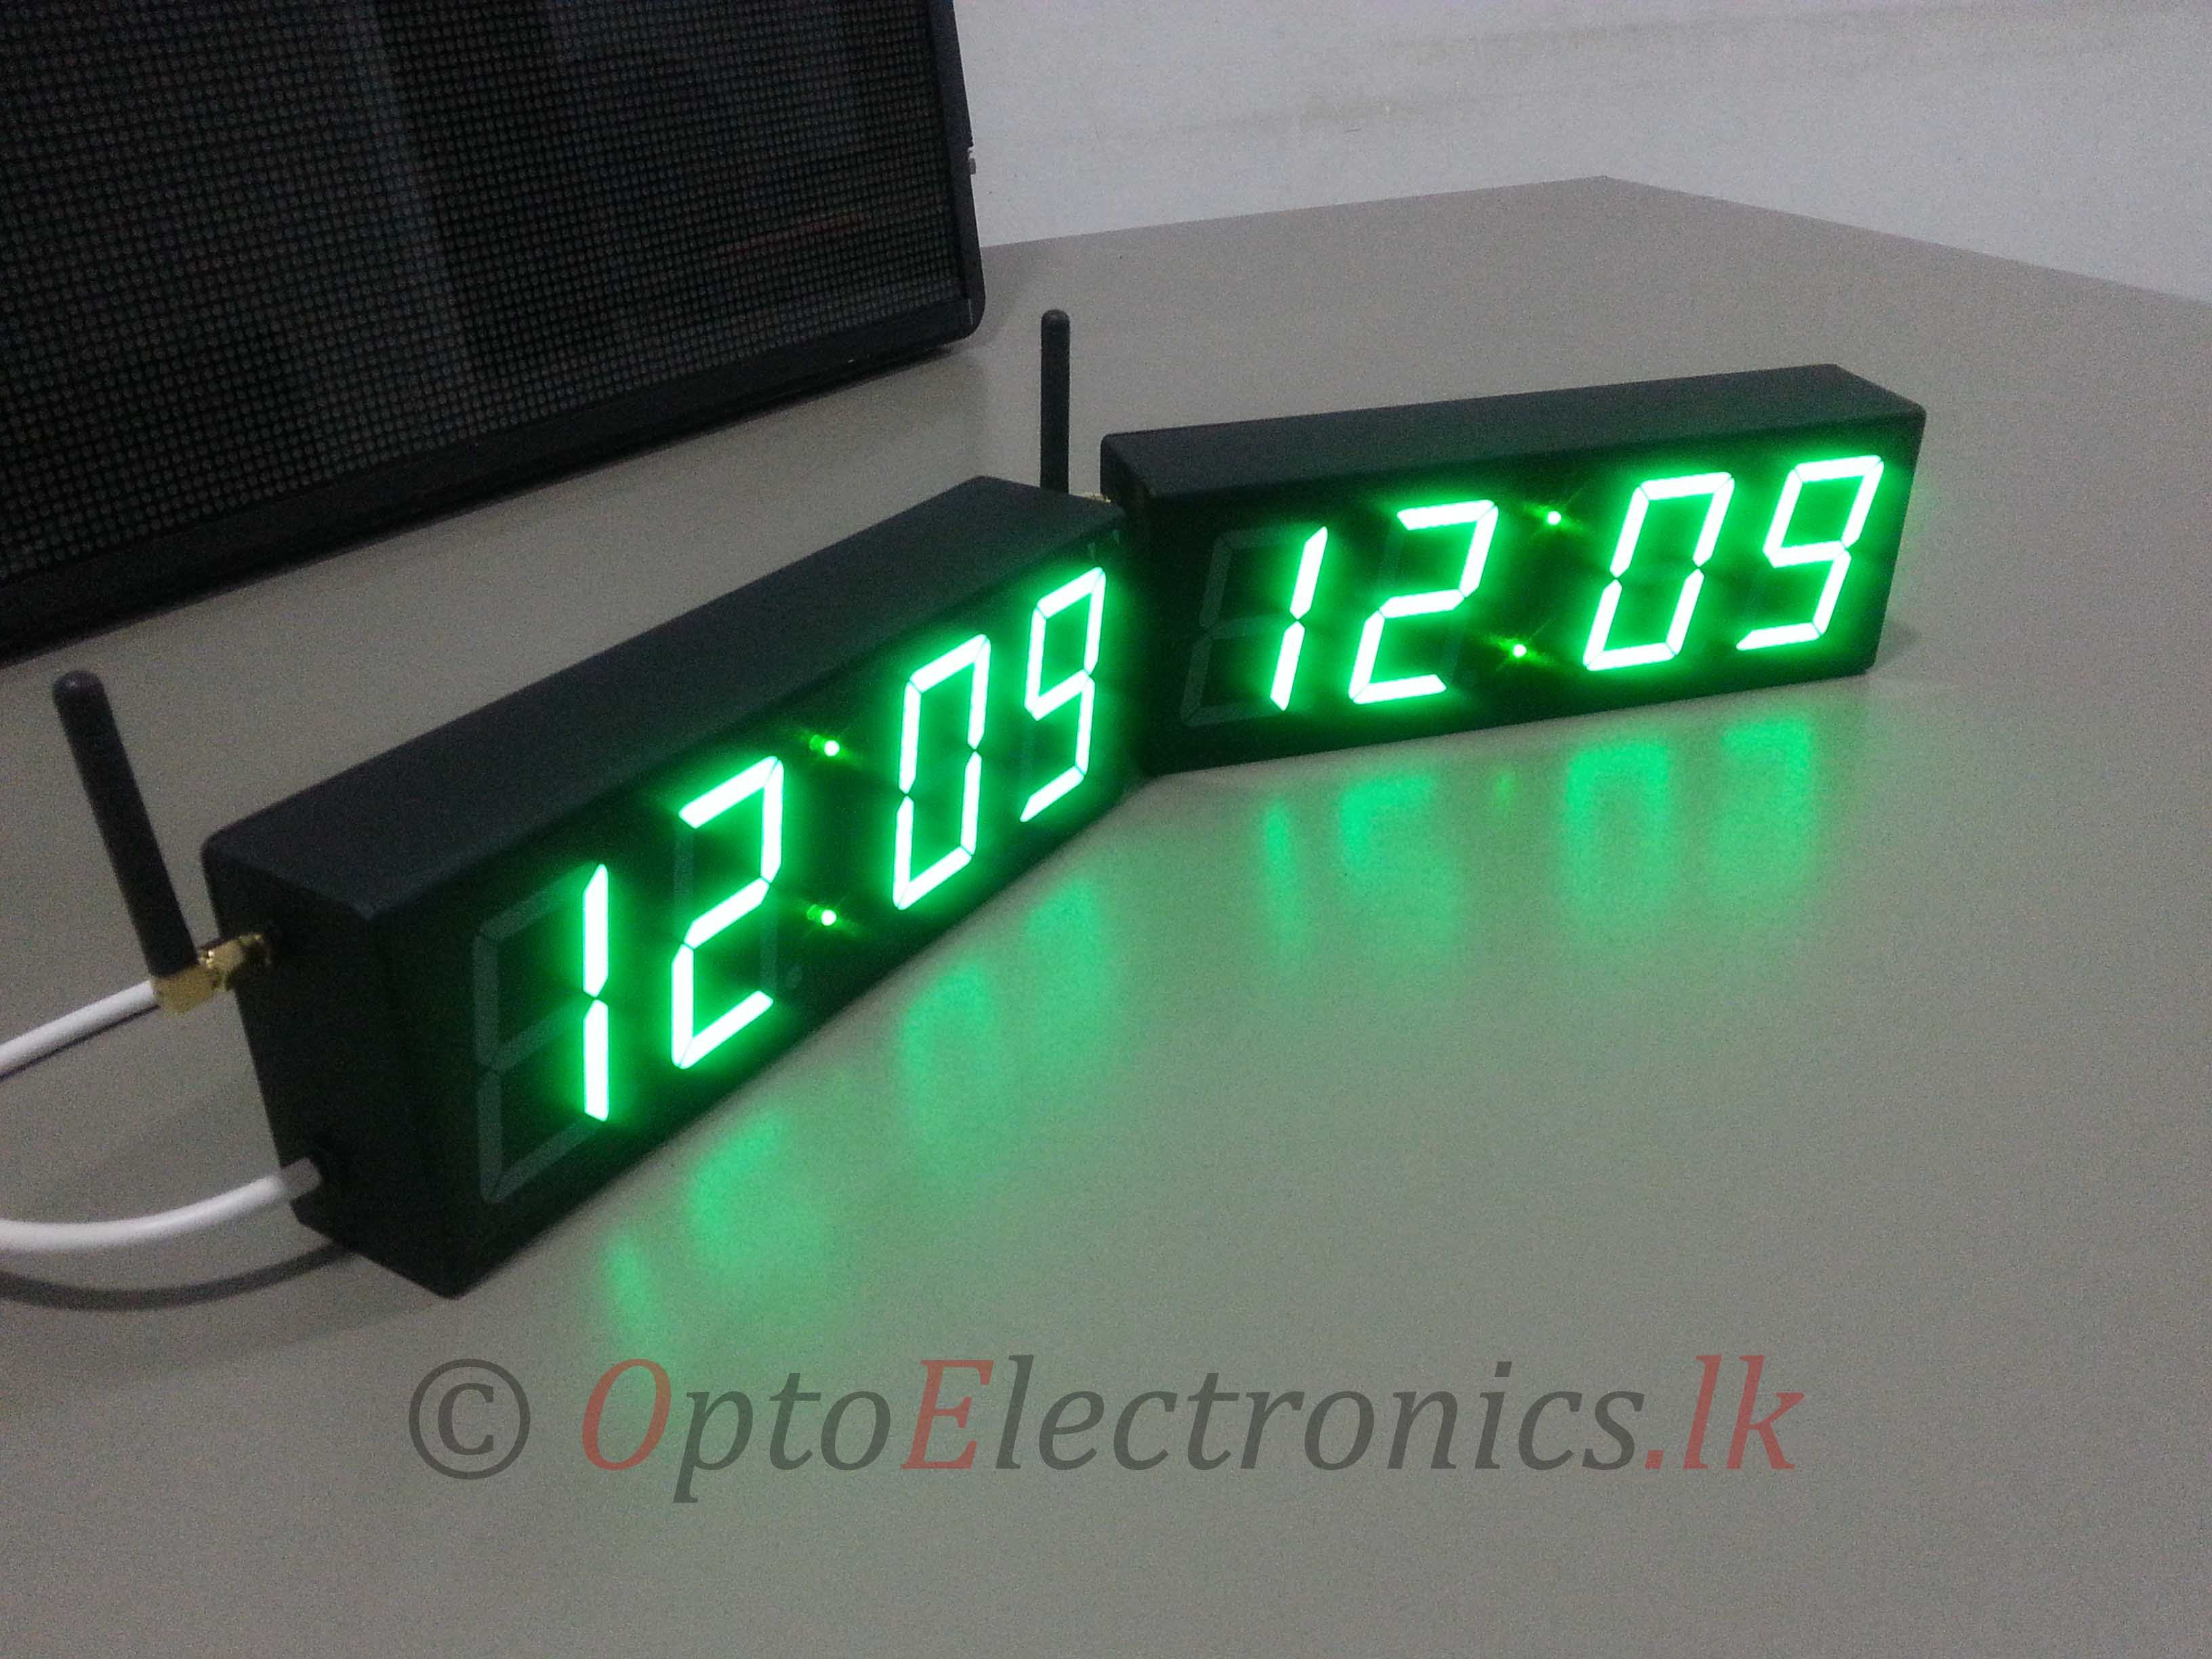 2 Inch Precision Digital Clocks Synchronized Optoelectronicsonline